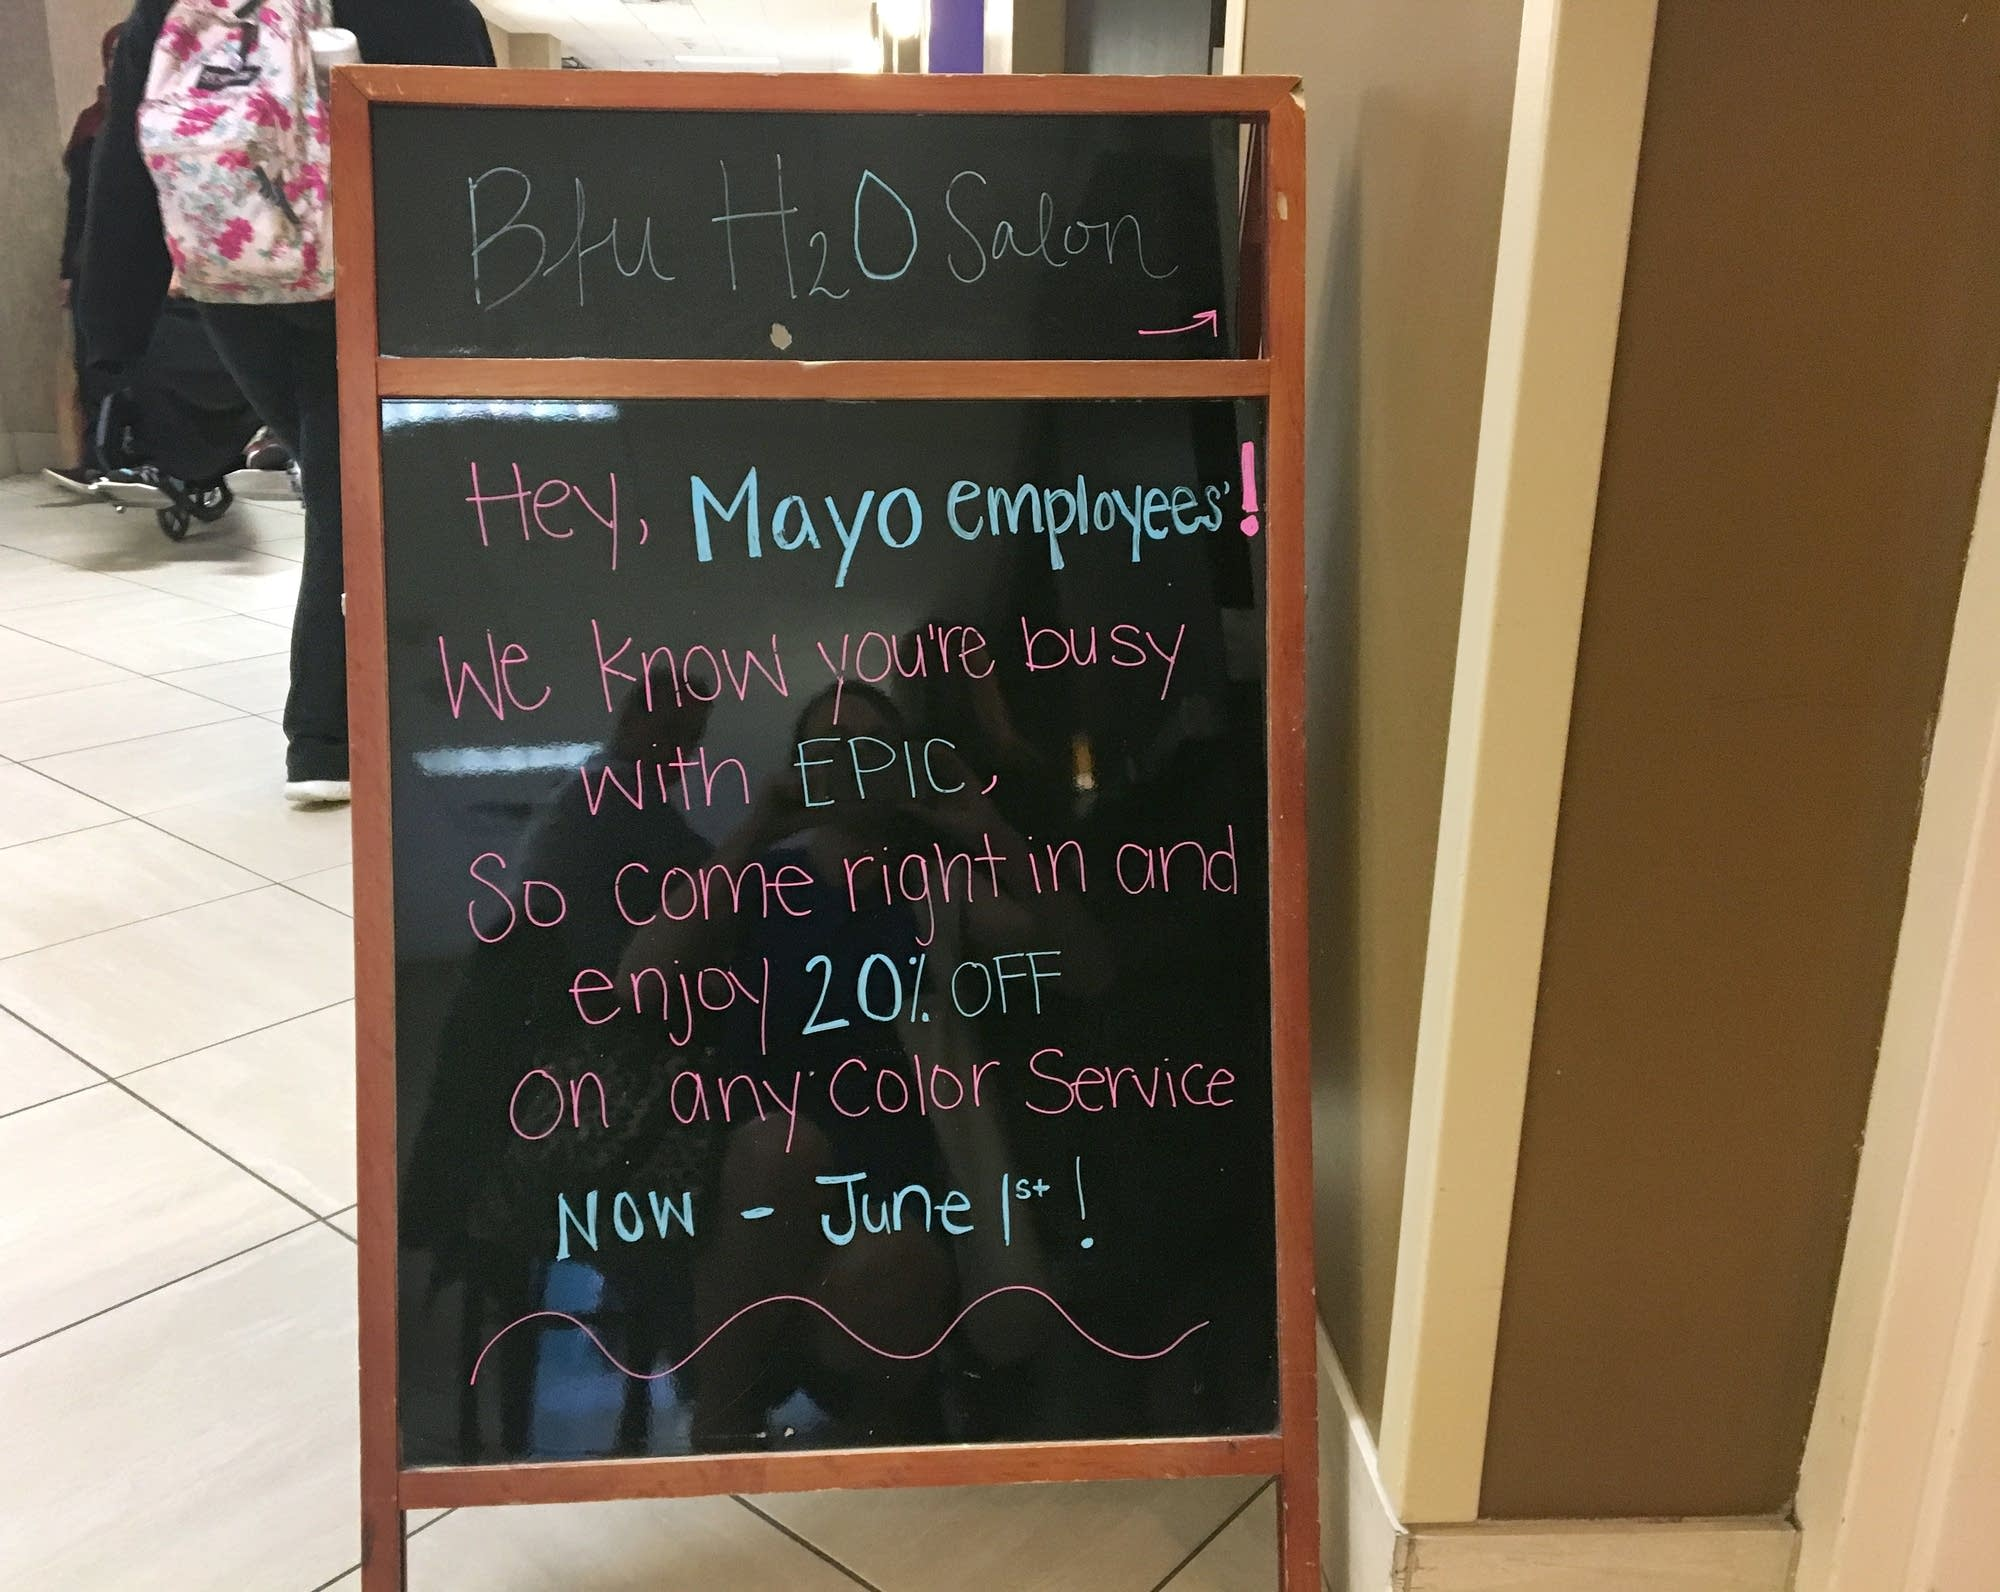 A Rochester salon tries to lure stressed out Mayo Clinic employees.